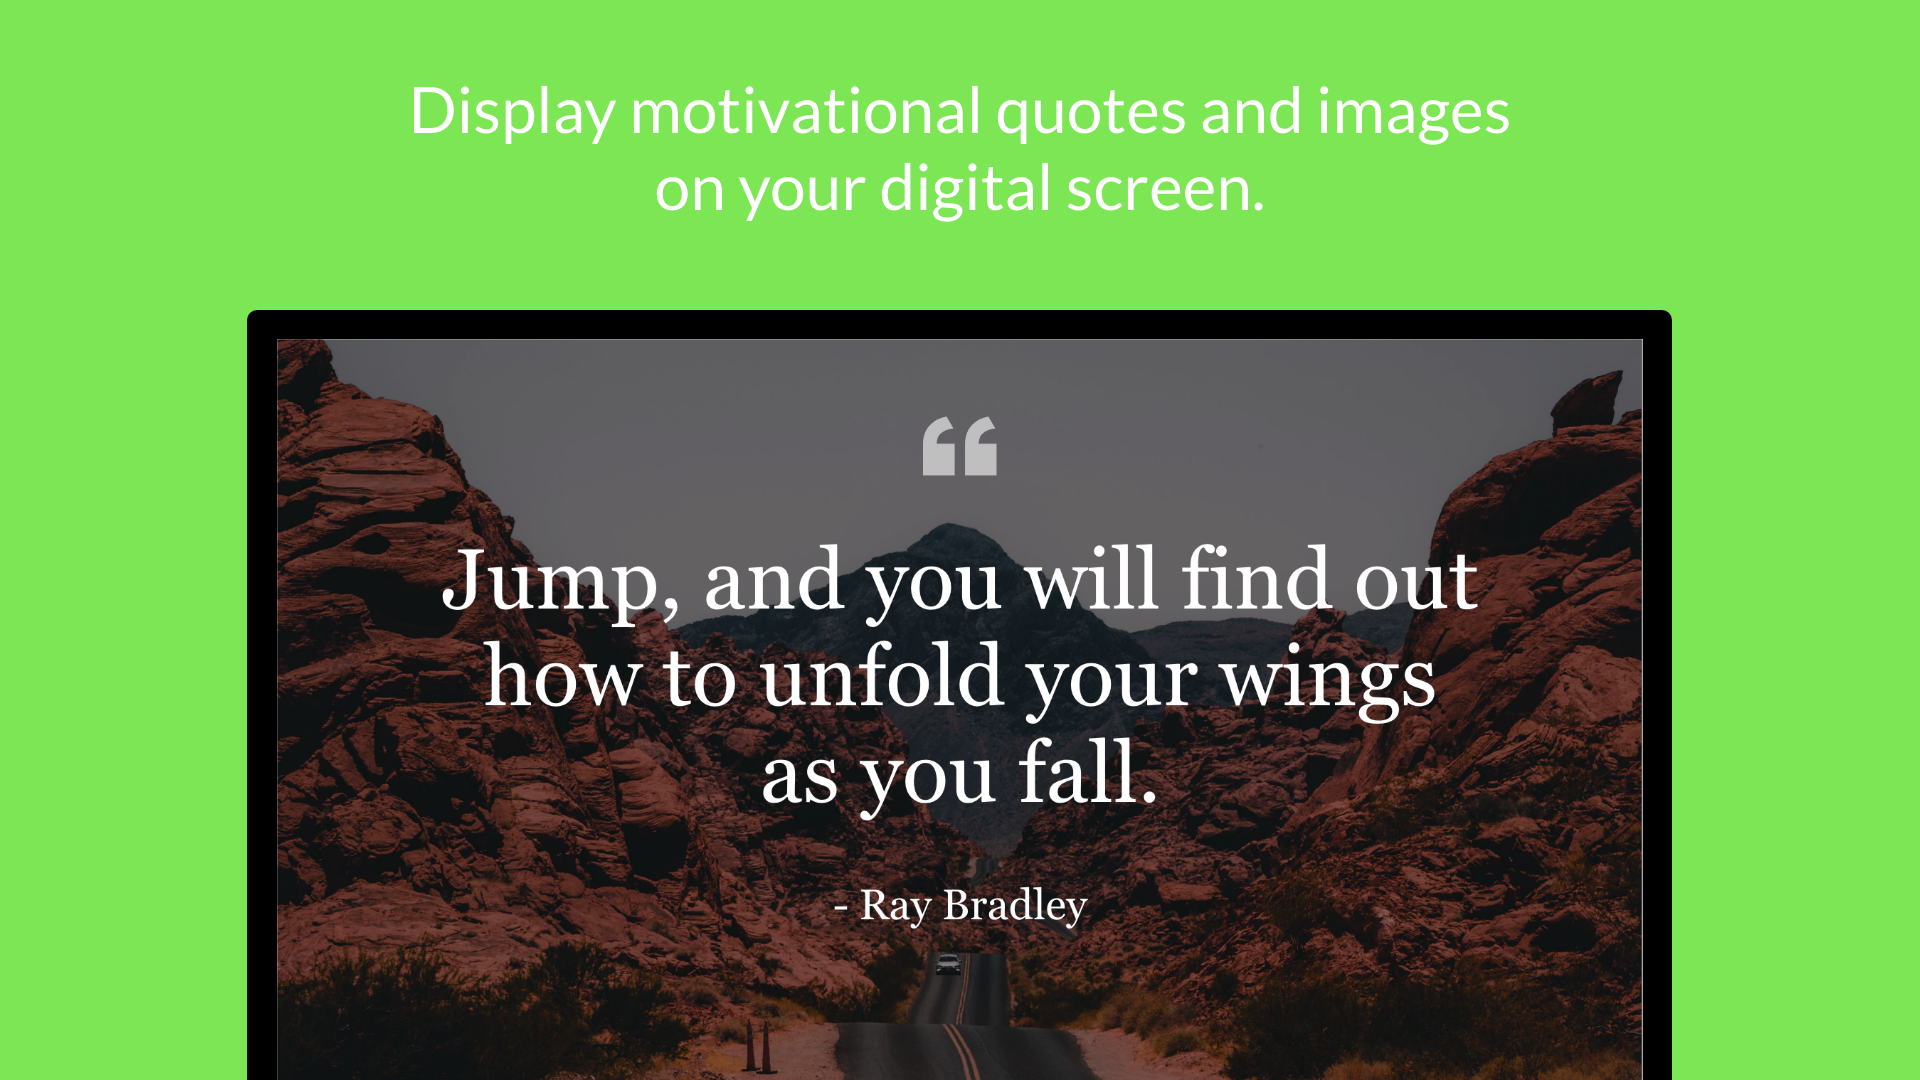 Inspirational Quotes App screenshot 1